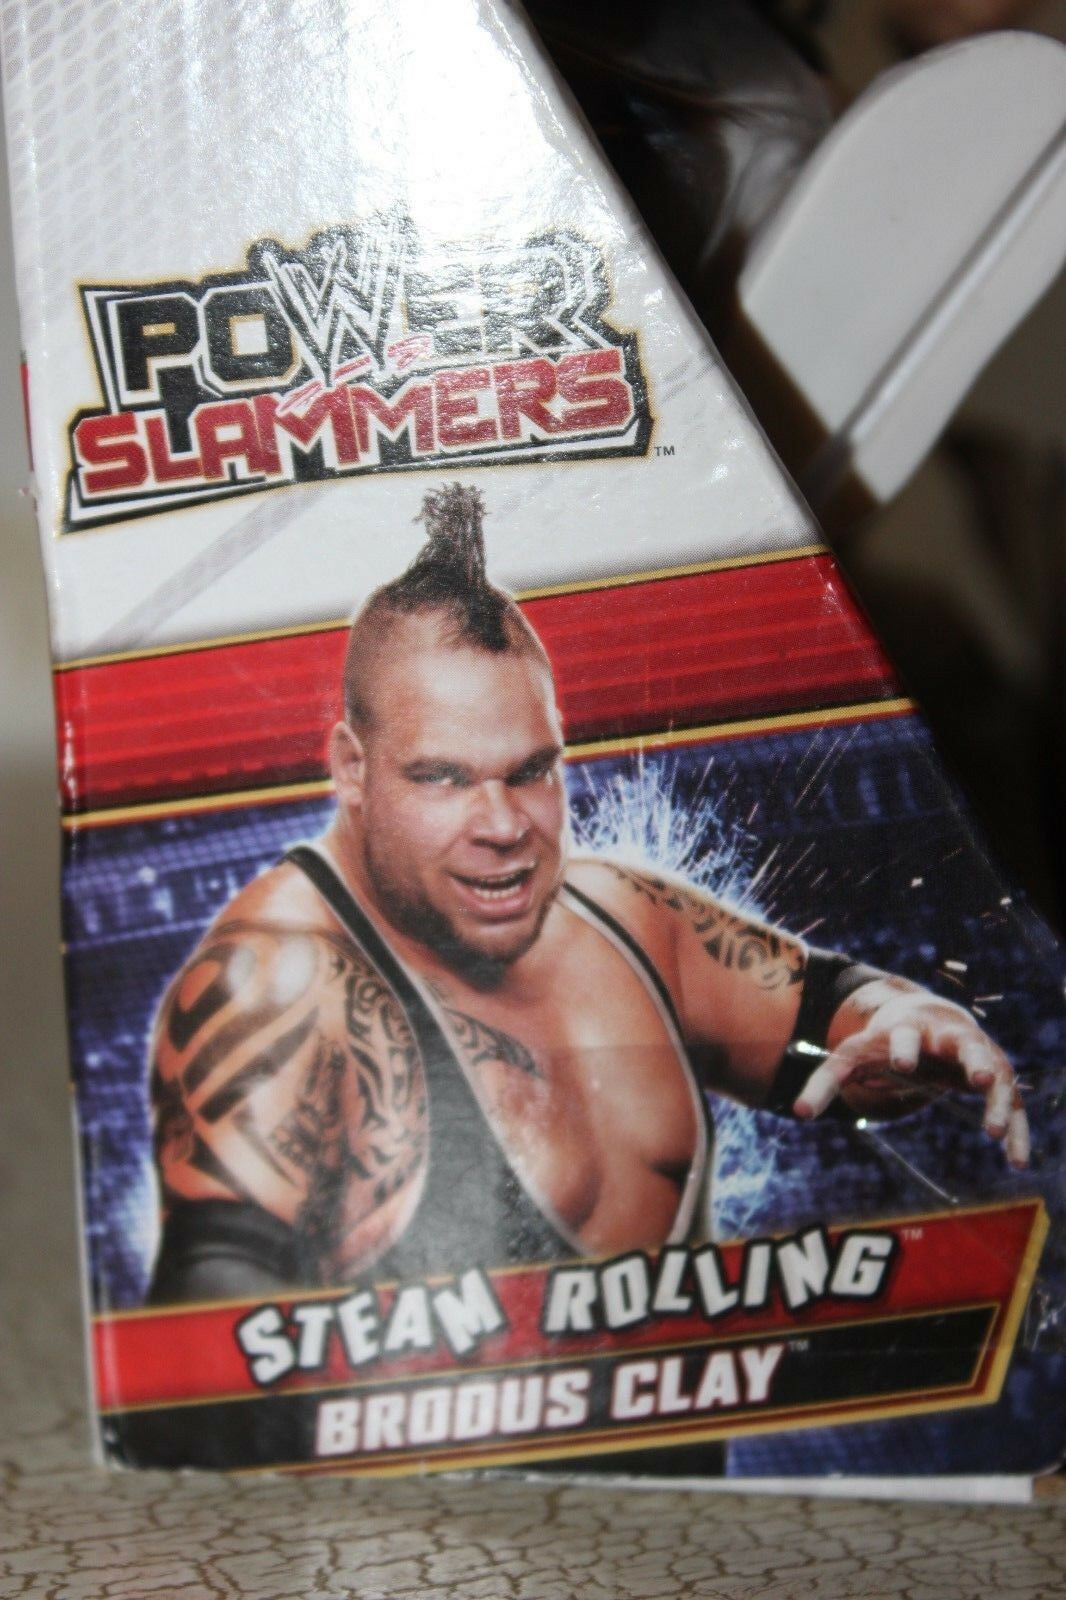 WWE Power Slammers Steam Rolling Brodus Clay Clay Clay Motorised Figure Year 2012 e339ea